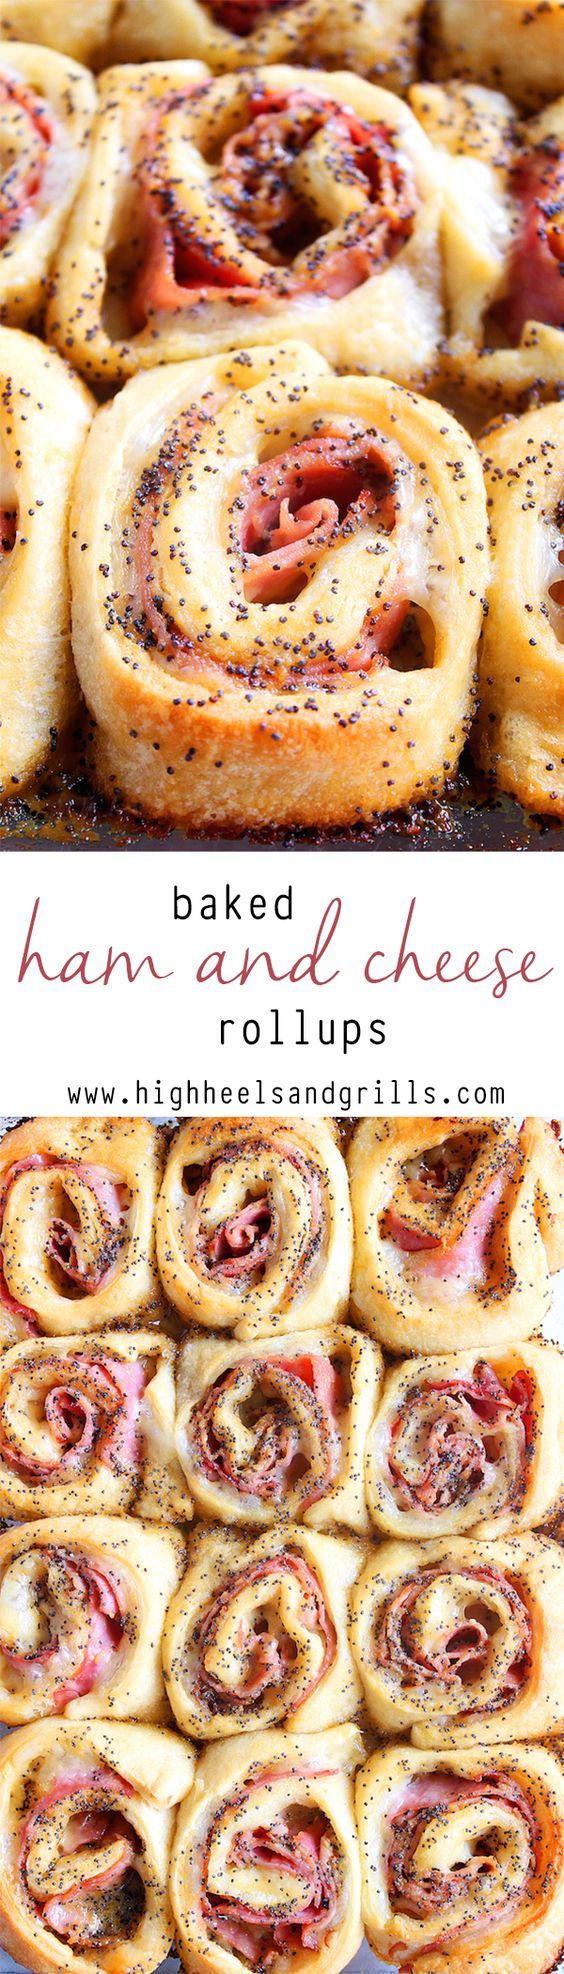 Baked Ham and Cheese Rollups - These are a crowd pleaser EVERY time I make them.